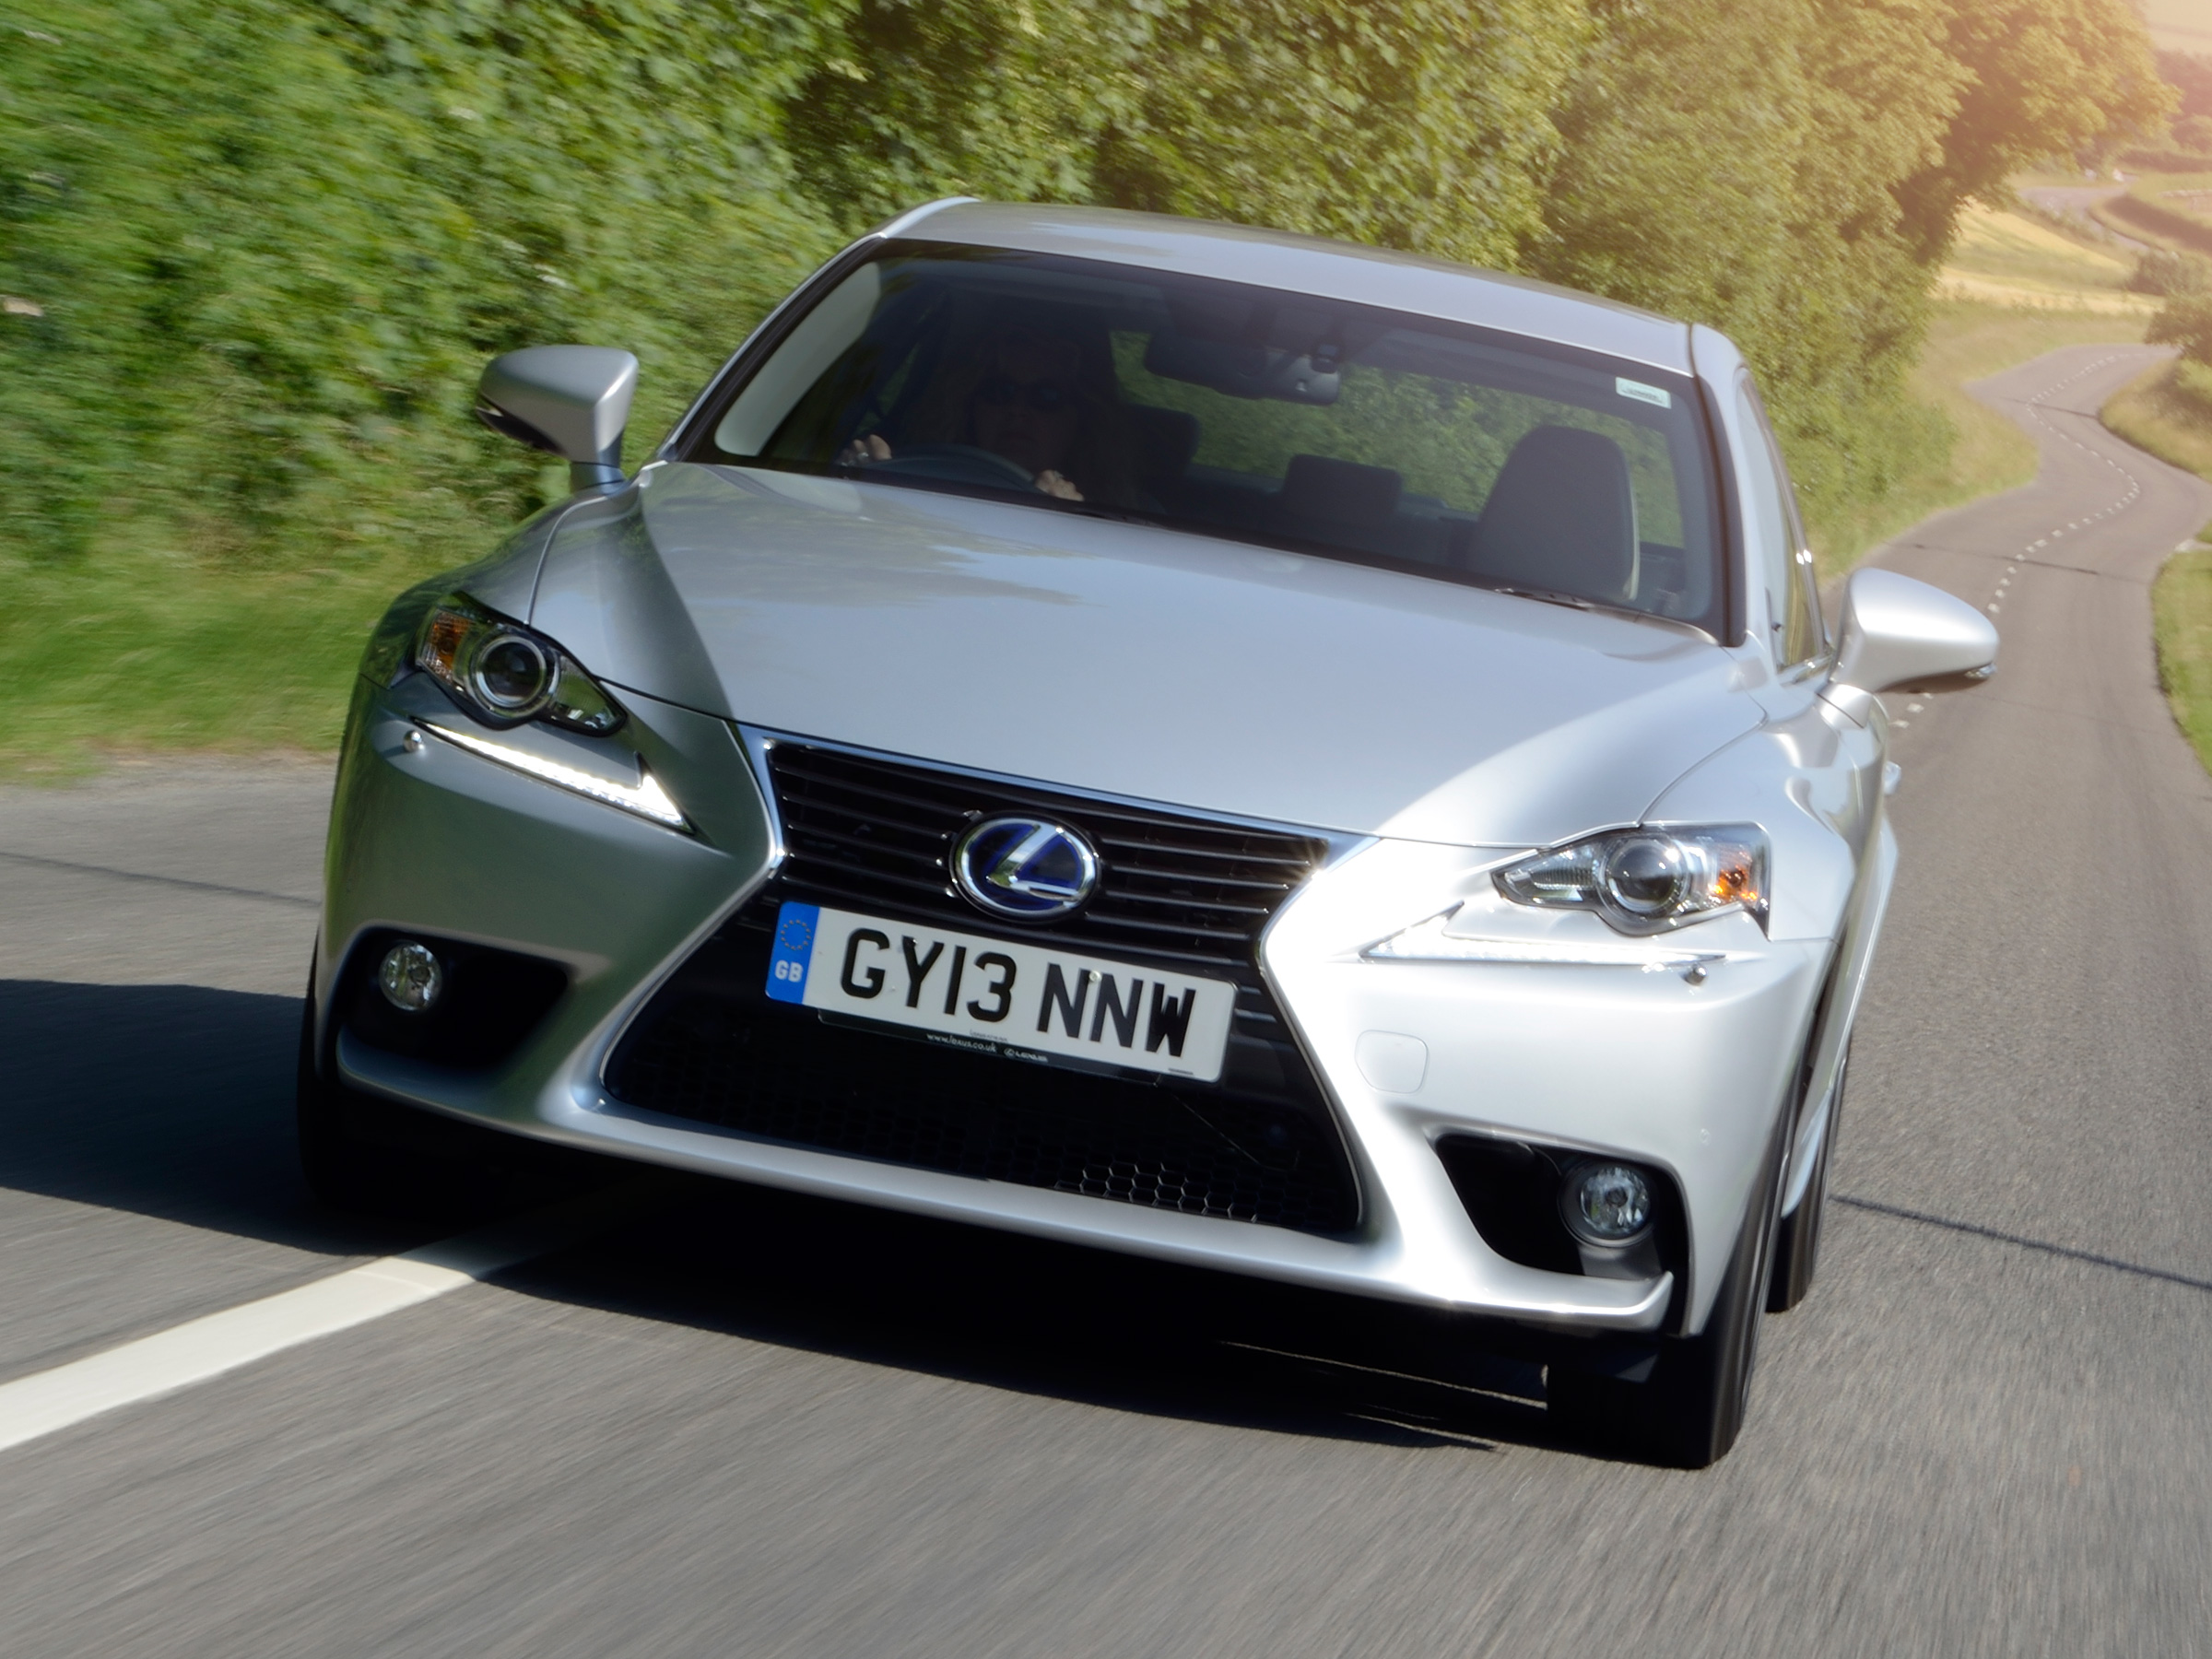 Used Lexus IS 300 F Sport Cars for Sale on Auto Trader UK